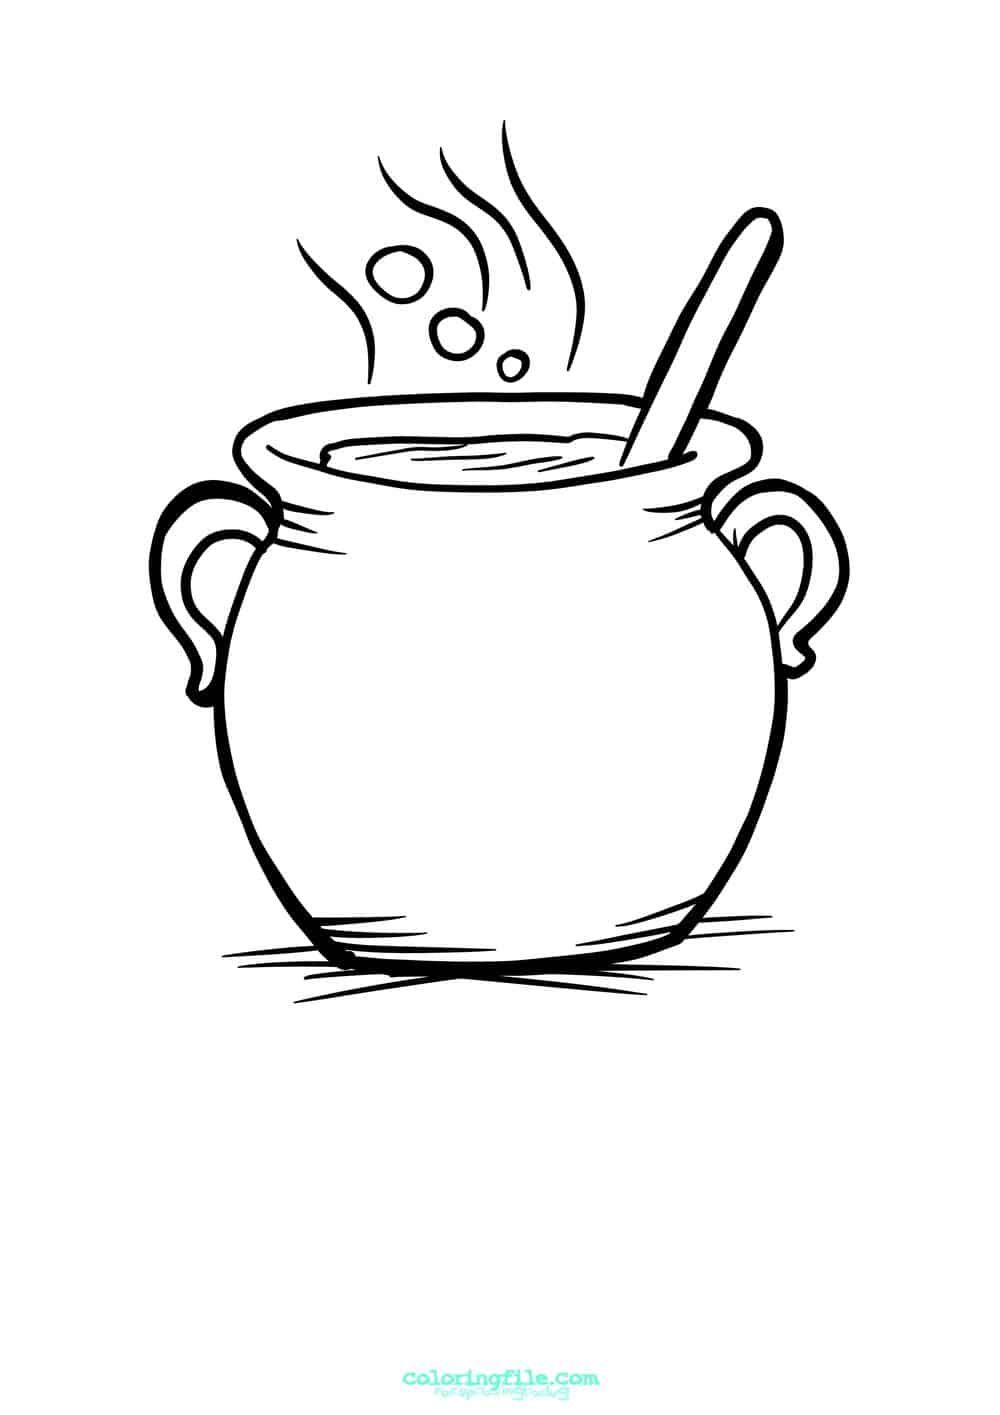 Cauldron Halloween Coloring Pages Halloween Coloring Pages Halloween Coloring Pages Printable Halloween Coloring